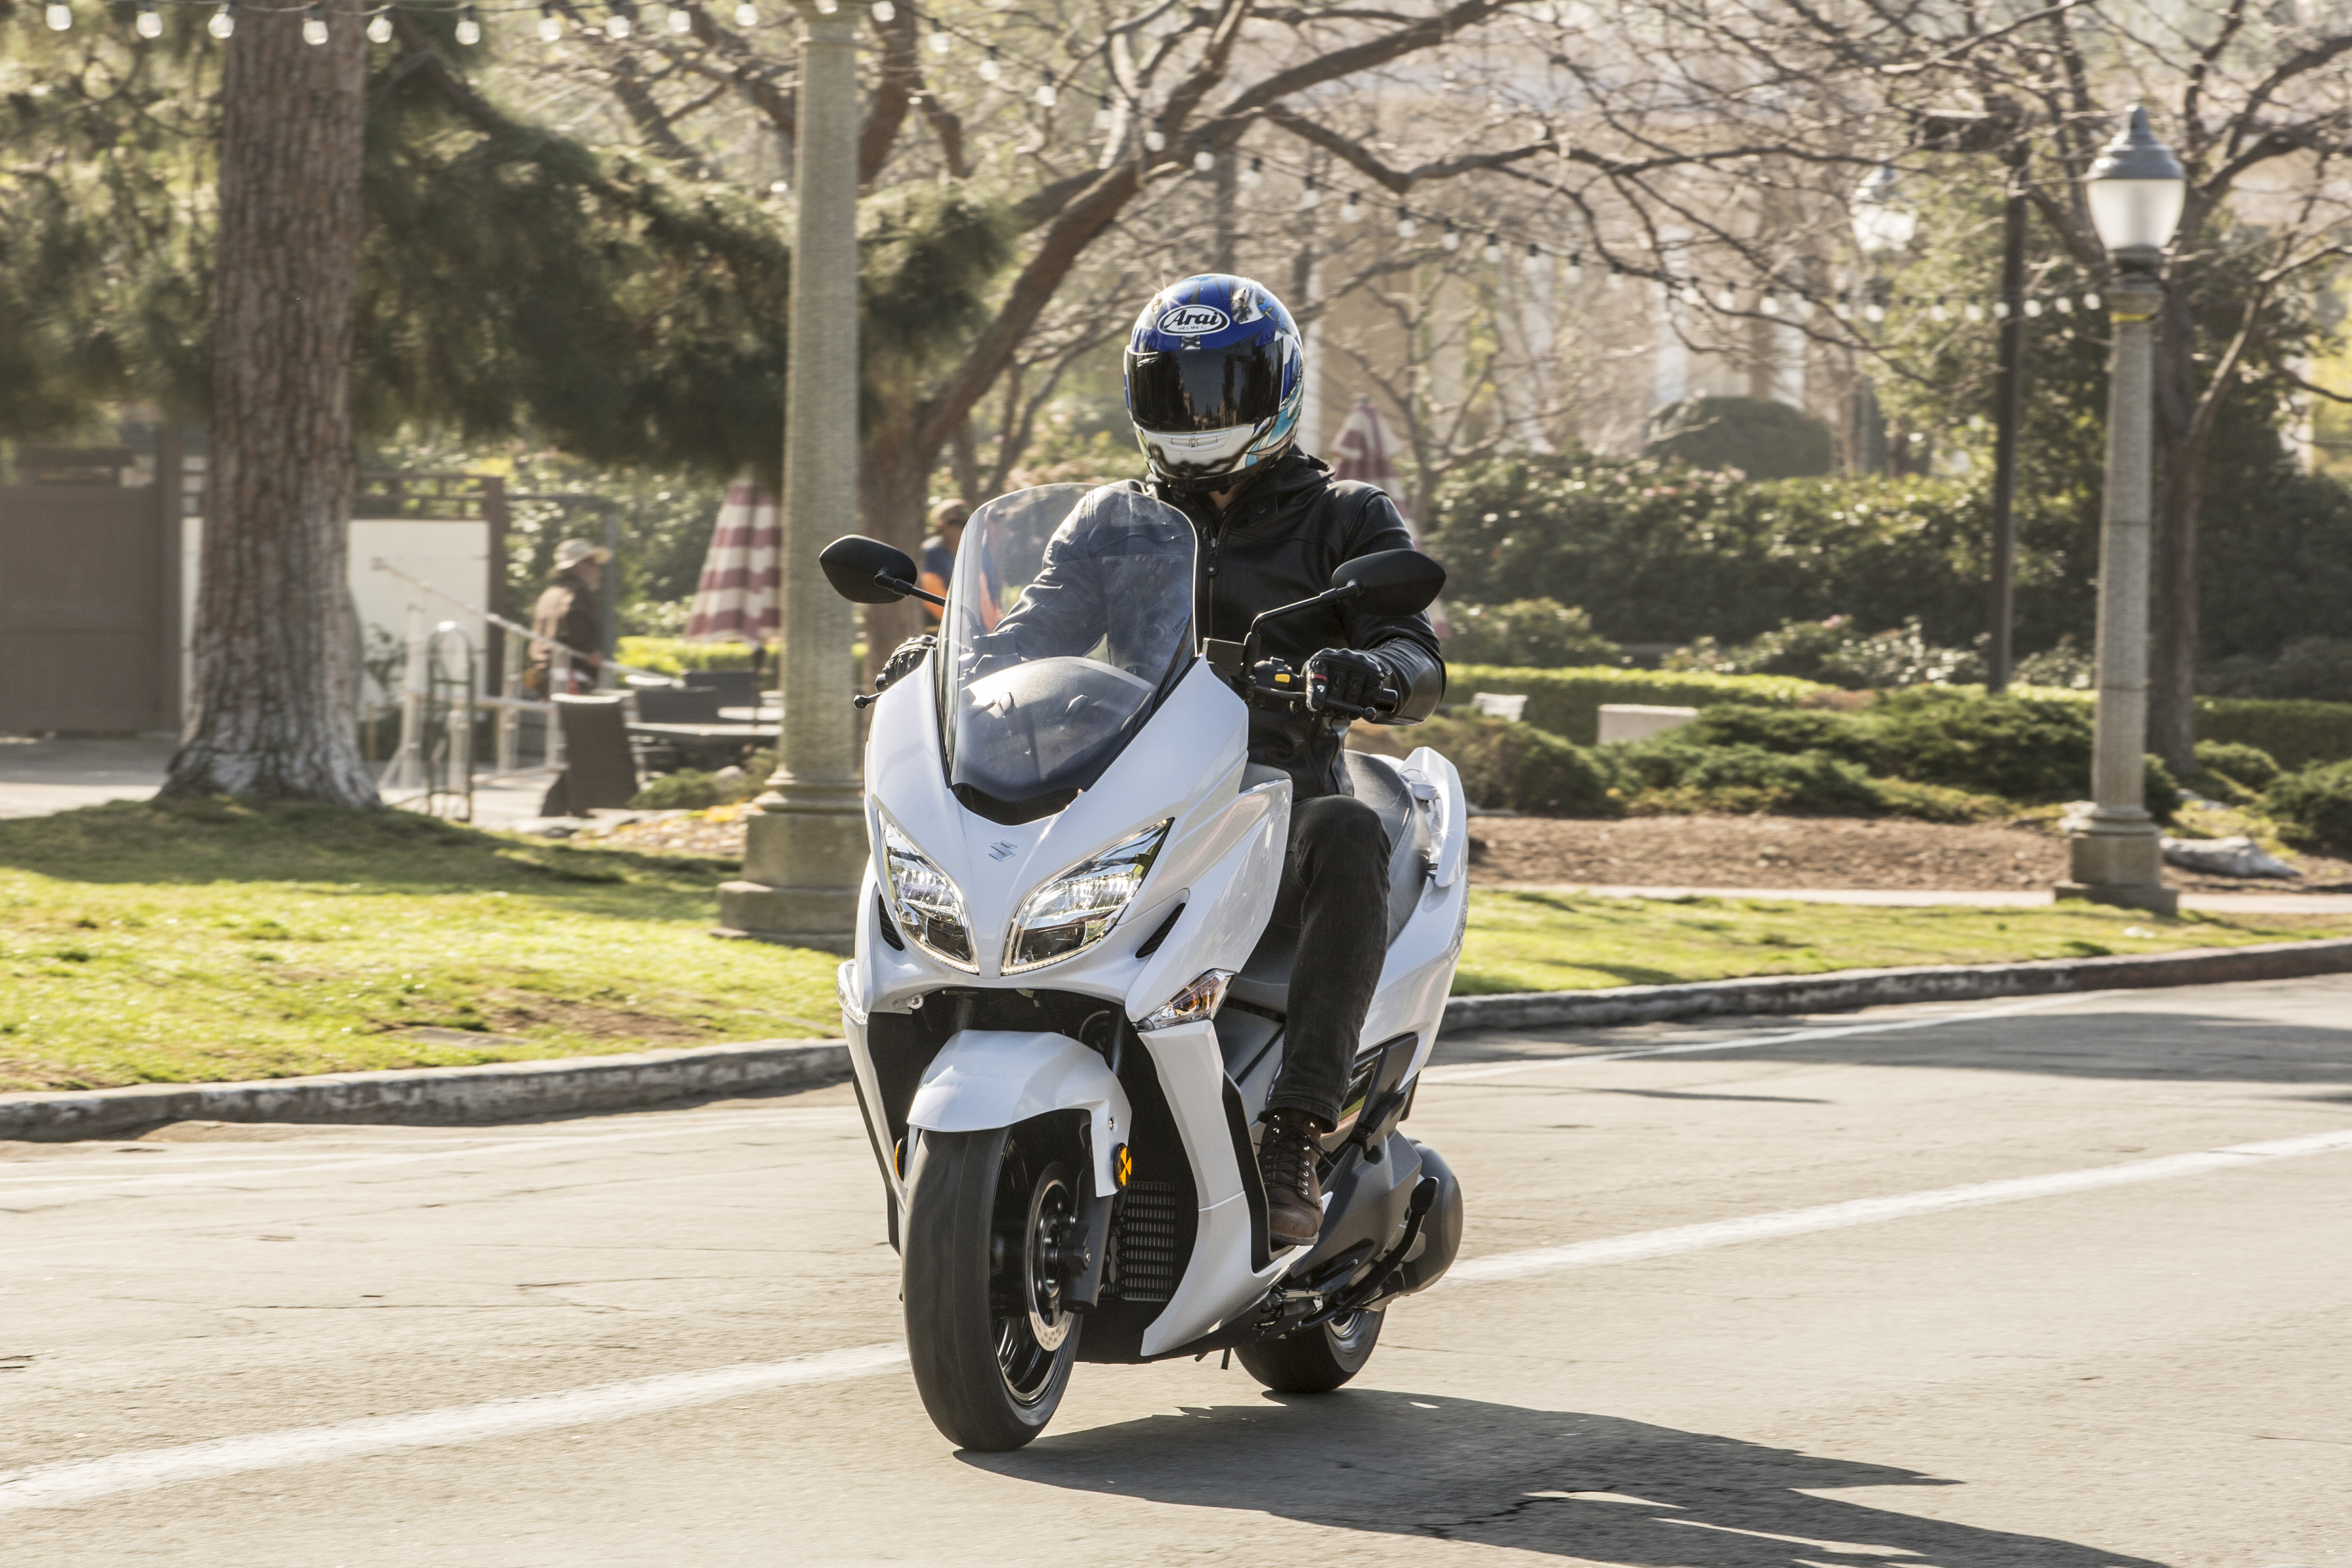 2018 Suzuki Burgman 400 First Ride Review 2008 Problems Not A Shabby Looking Scoot If You Ask Me